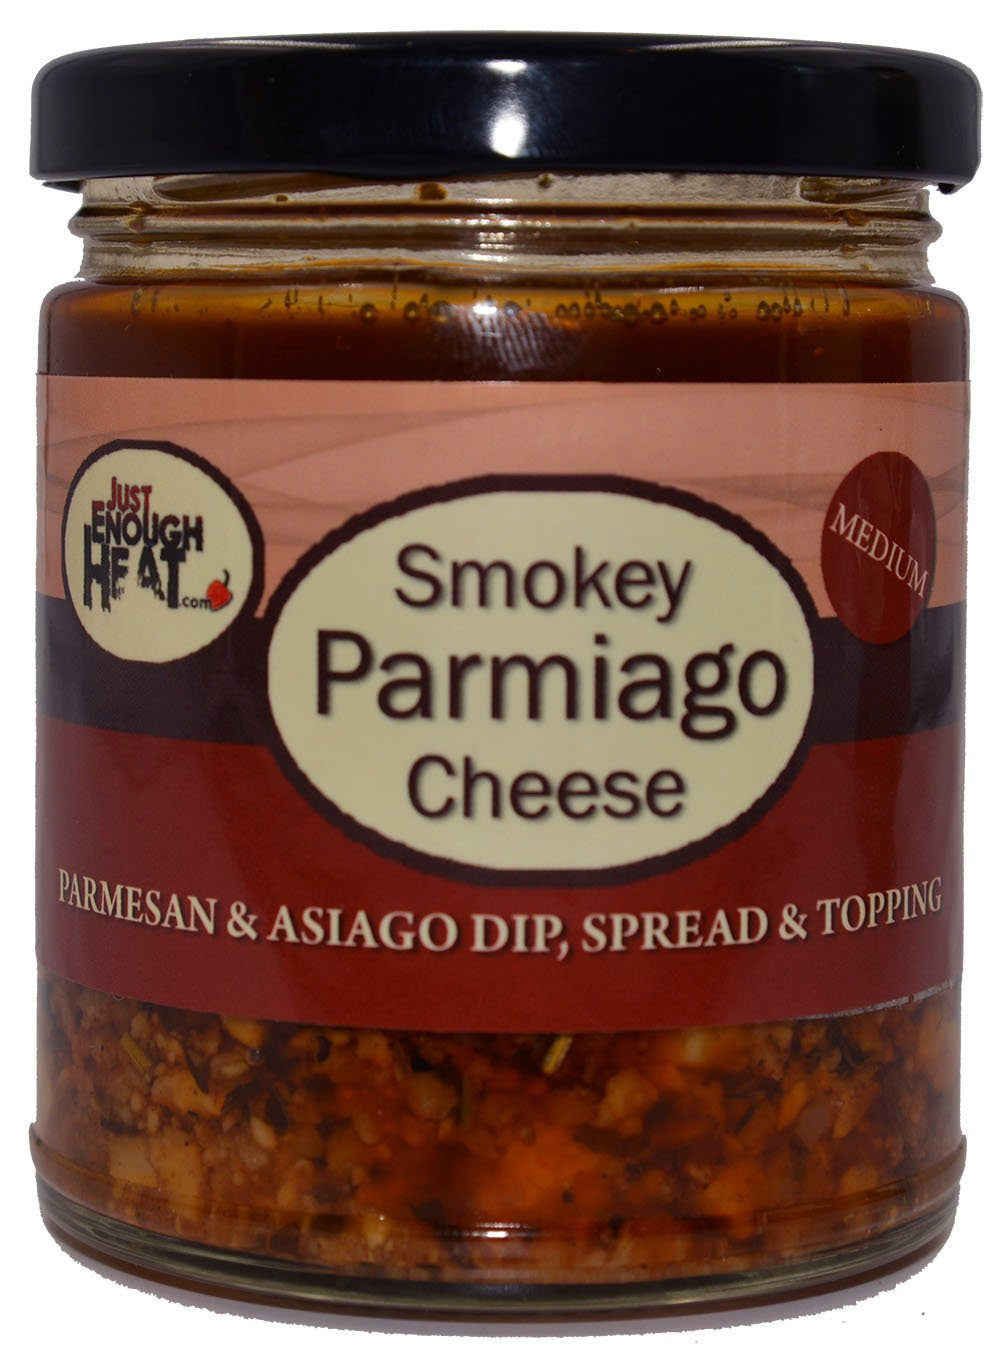 Smokey Parmiago Cheese - Parmesan & Asiago Marinated Cheese Dip, Spread & Topping by Just Enough Heat